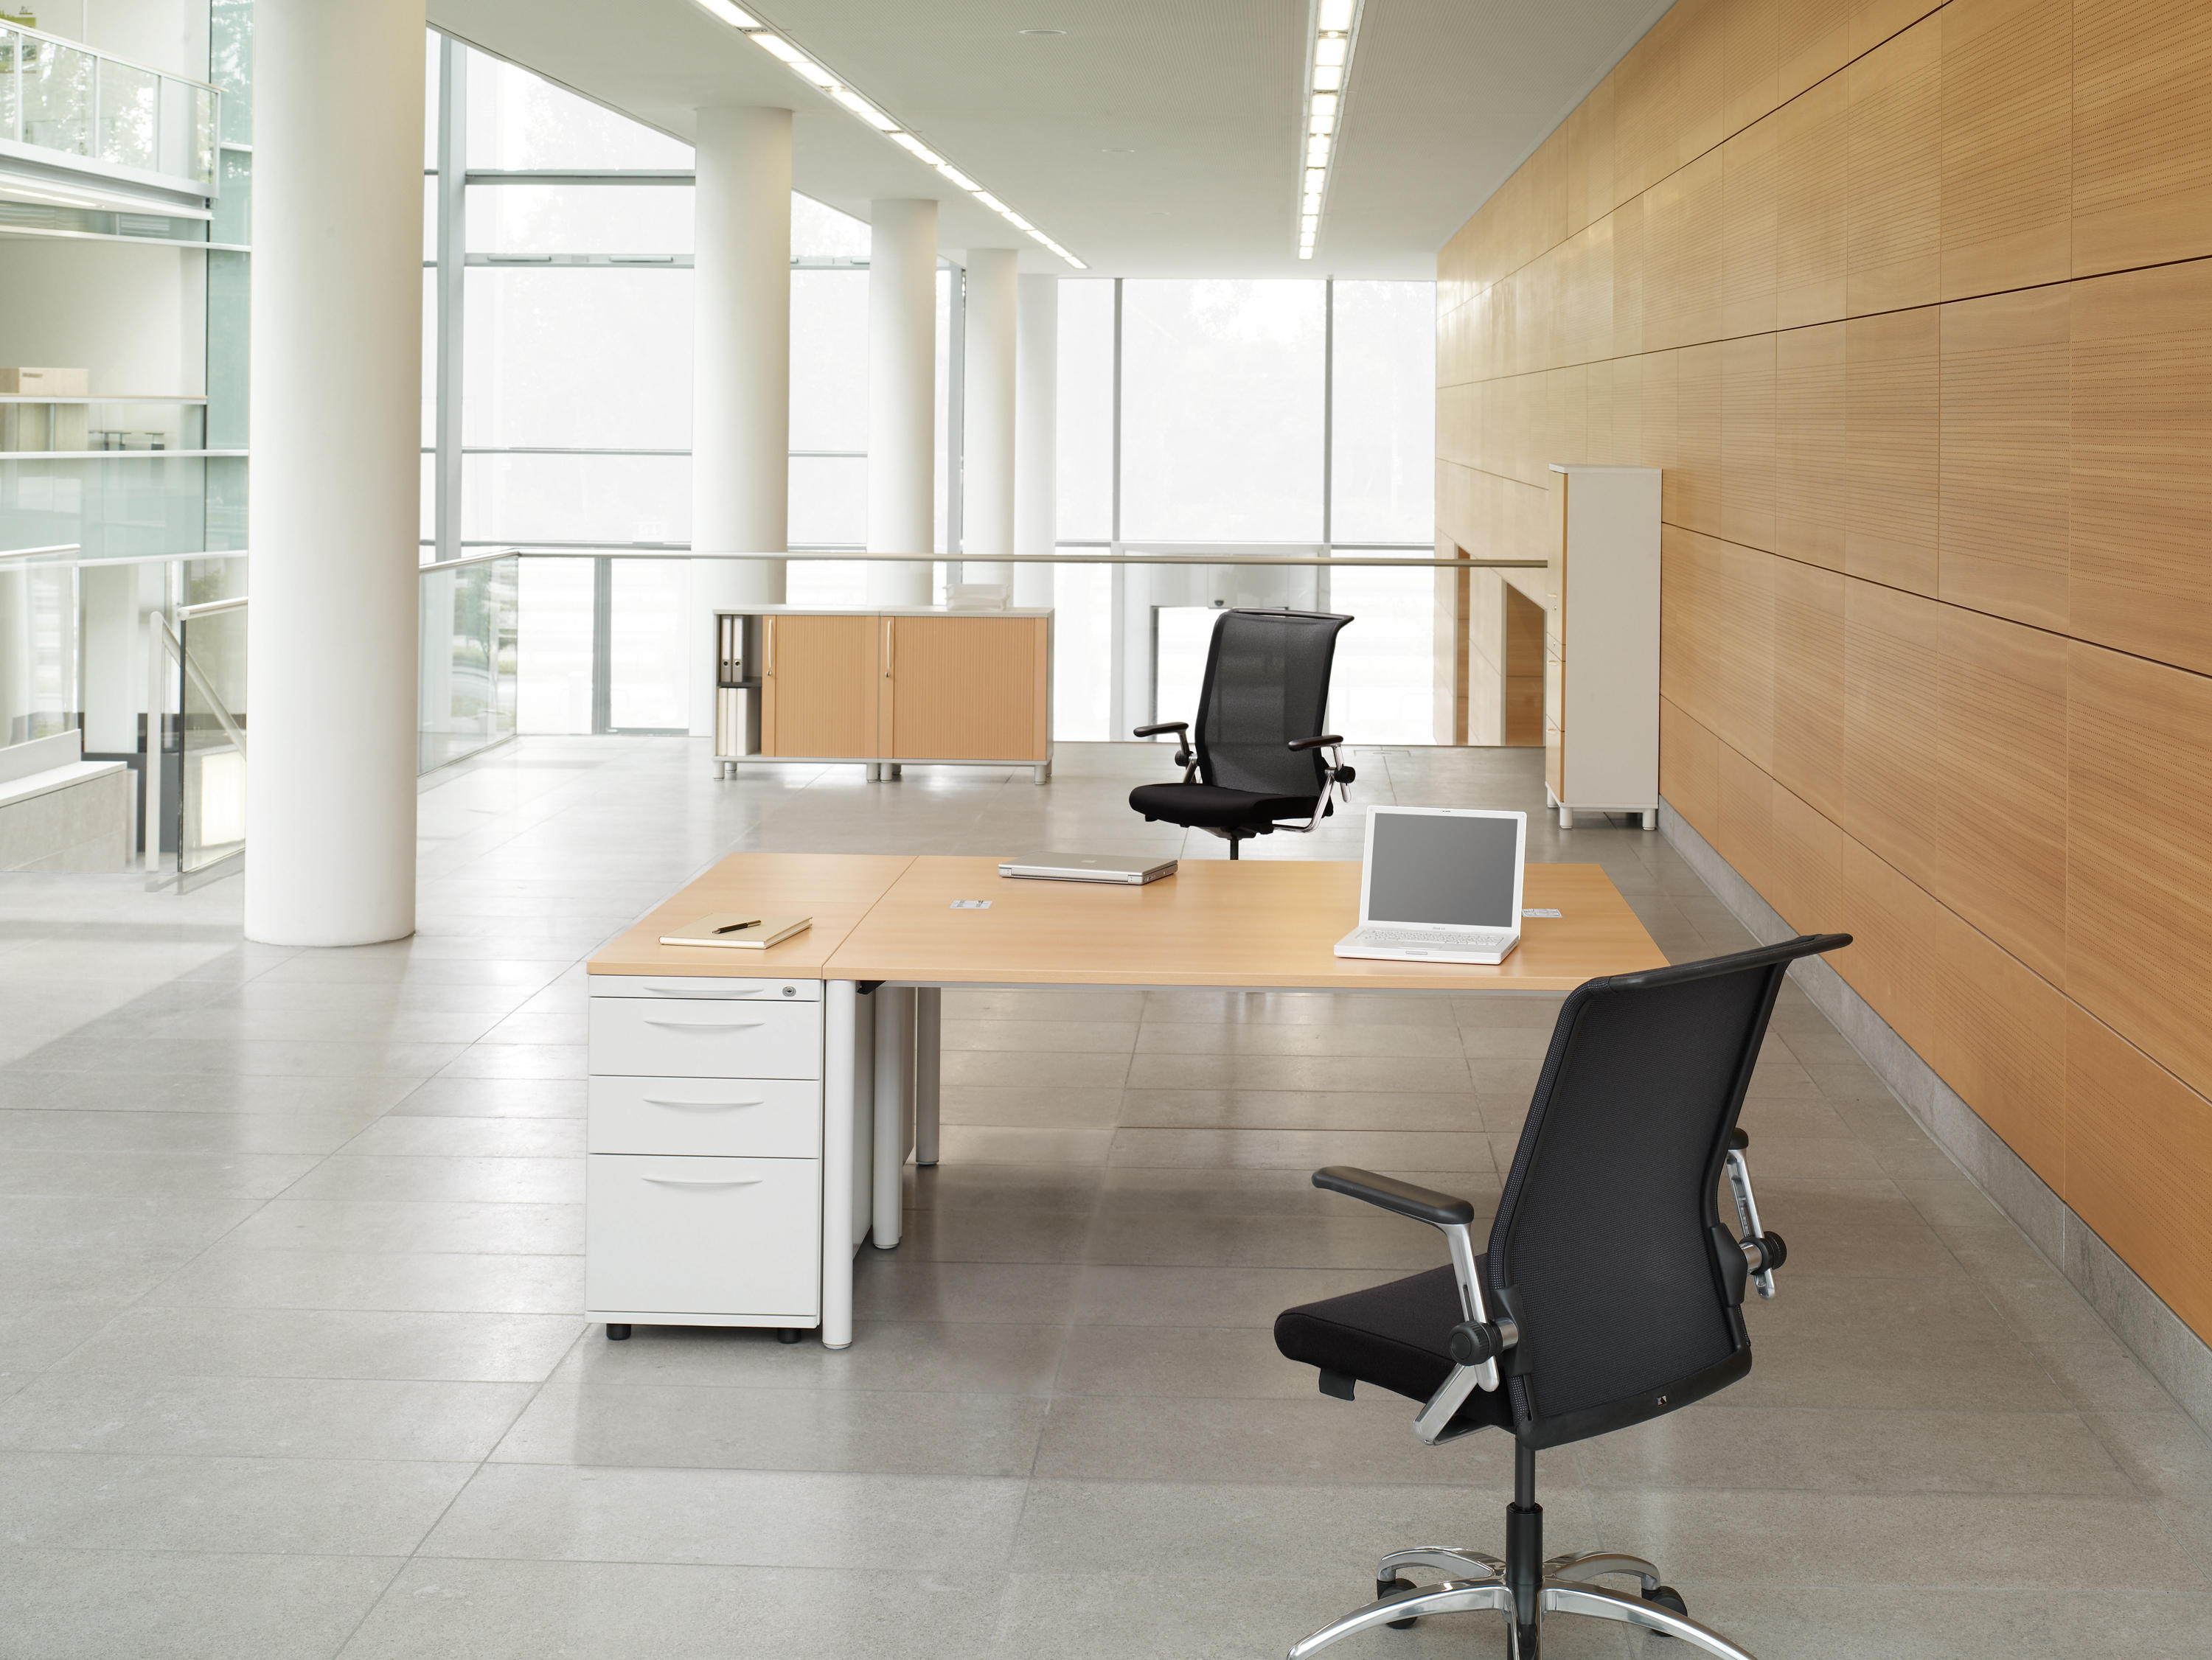 BASIC.4 - Individual desks from König+Neurath | Architonic